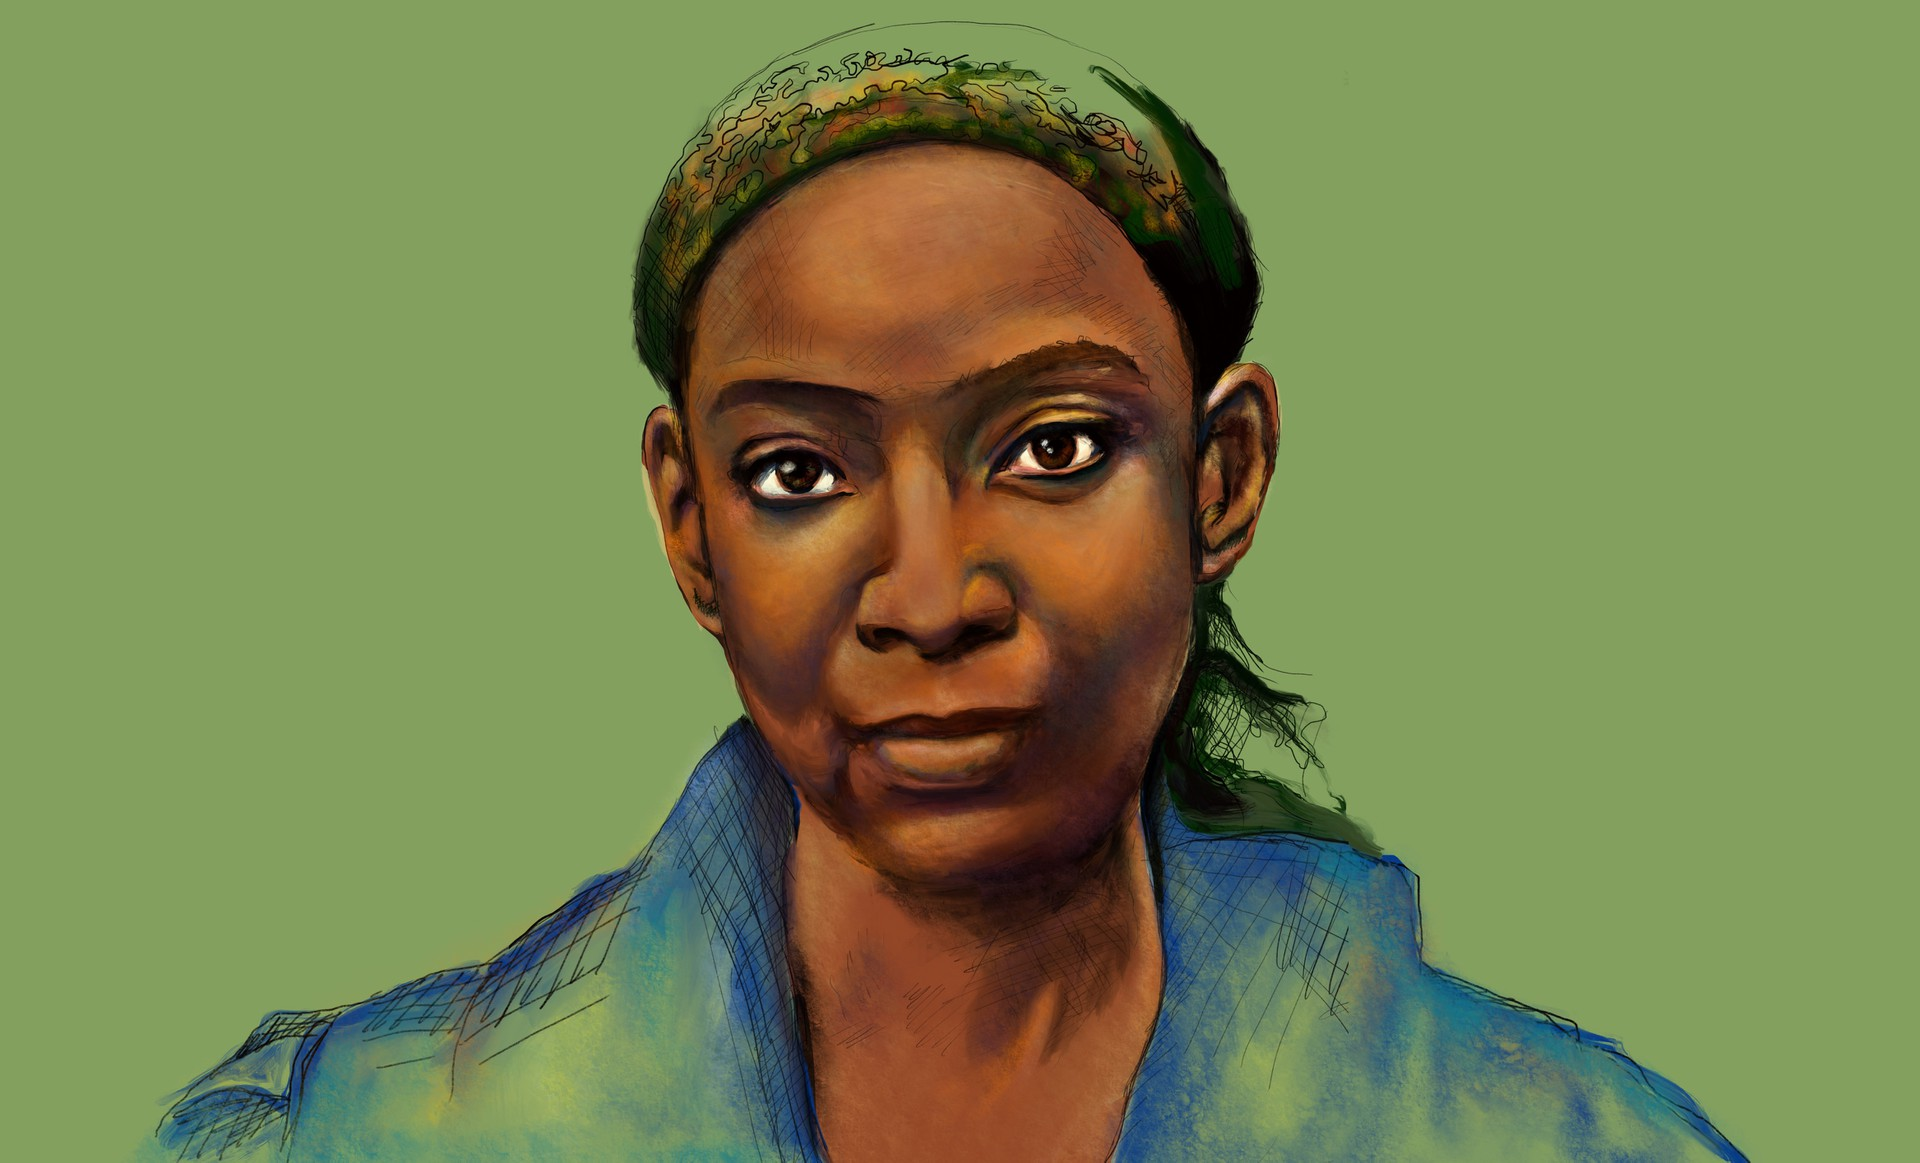 A colorful digital illustration of a Black woman wearing a head scarf and staring pleasantly at the camera; she is unsmiling but her expression is strong and warm. The background is light green.